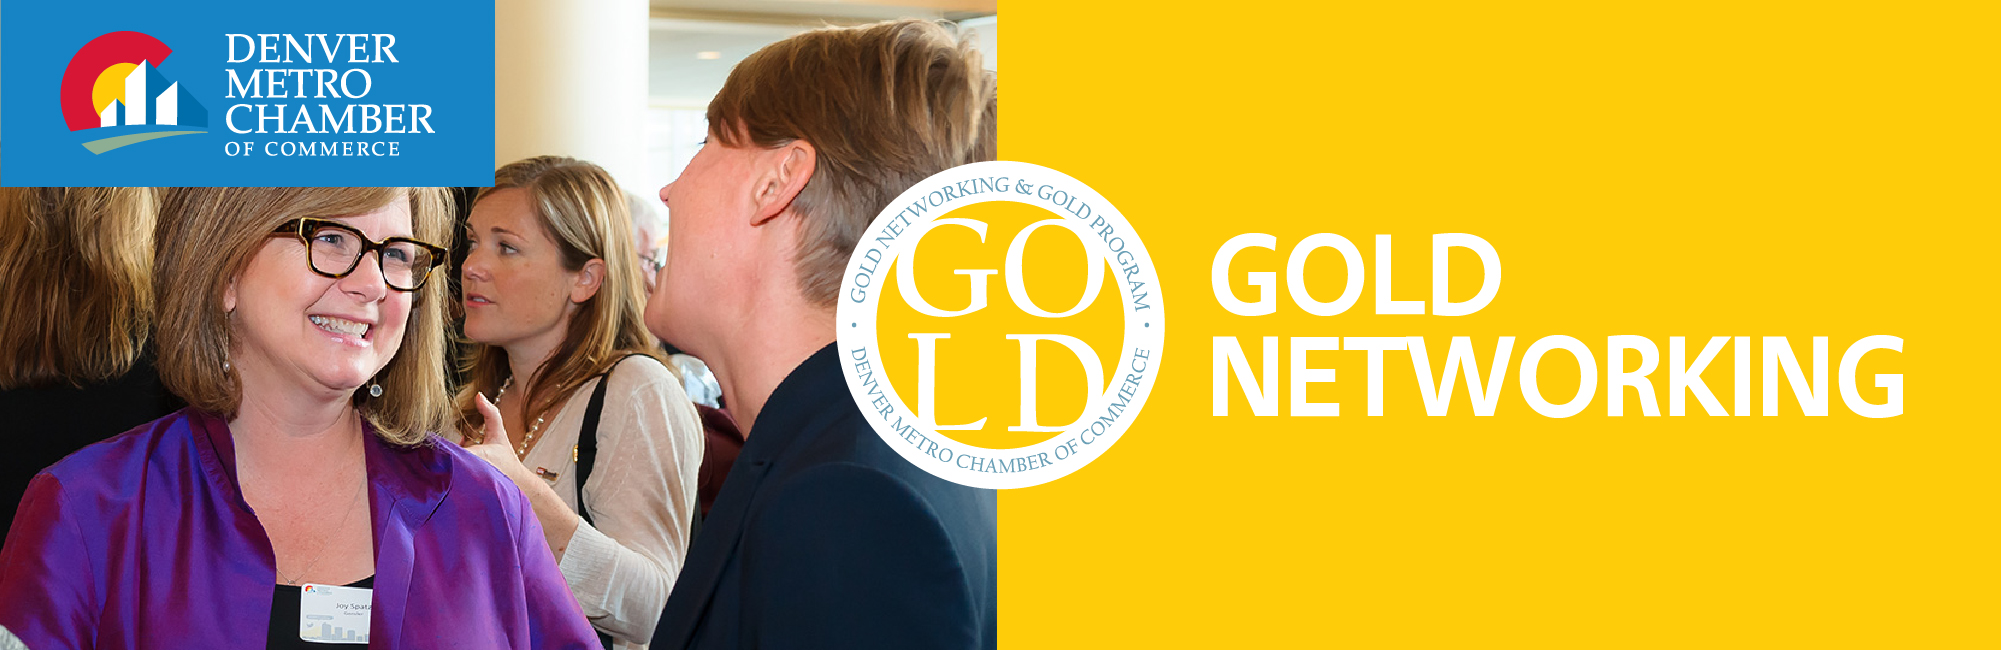 October Gold Networking